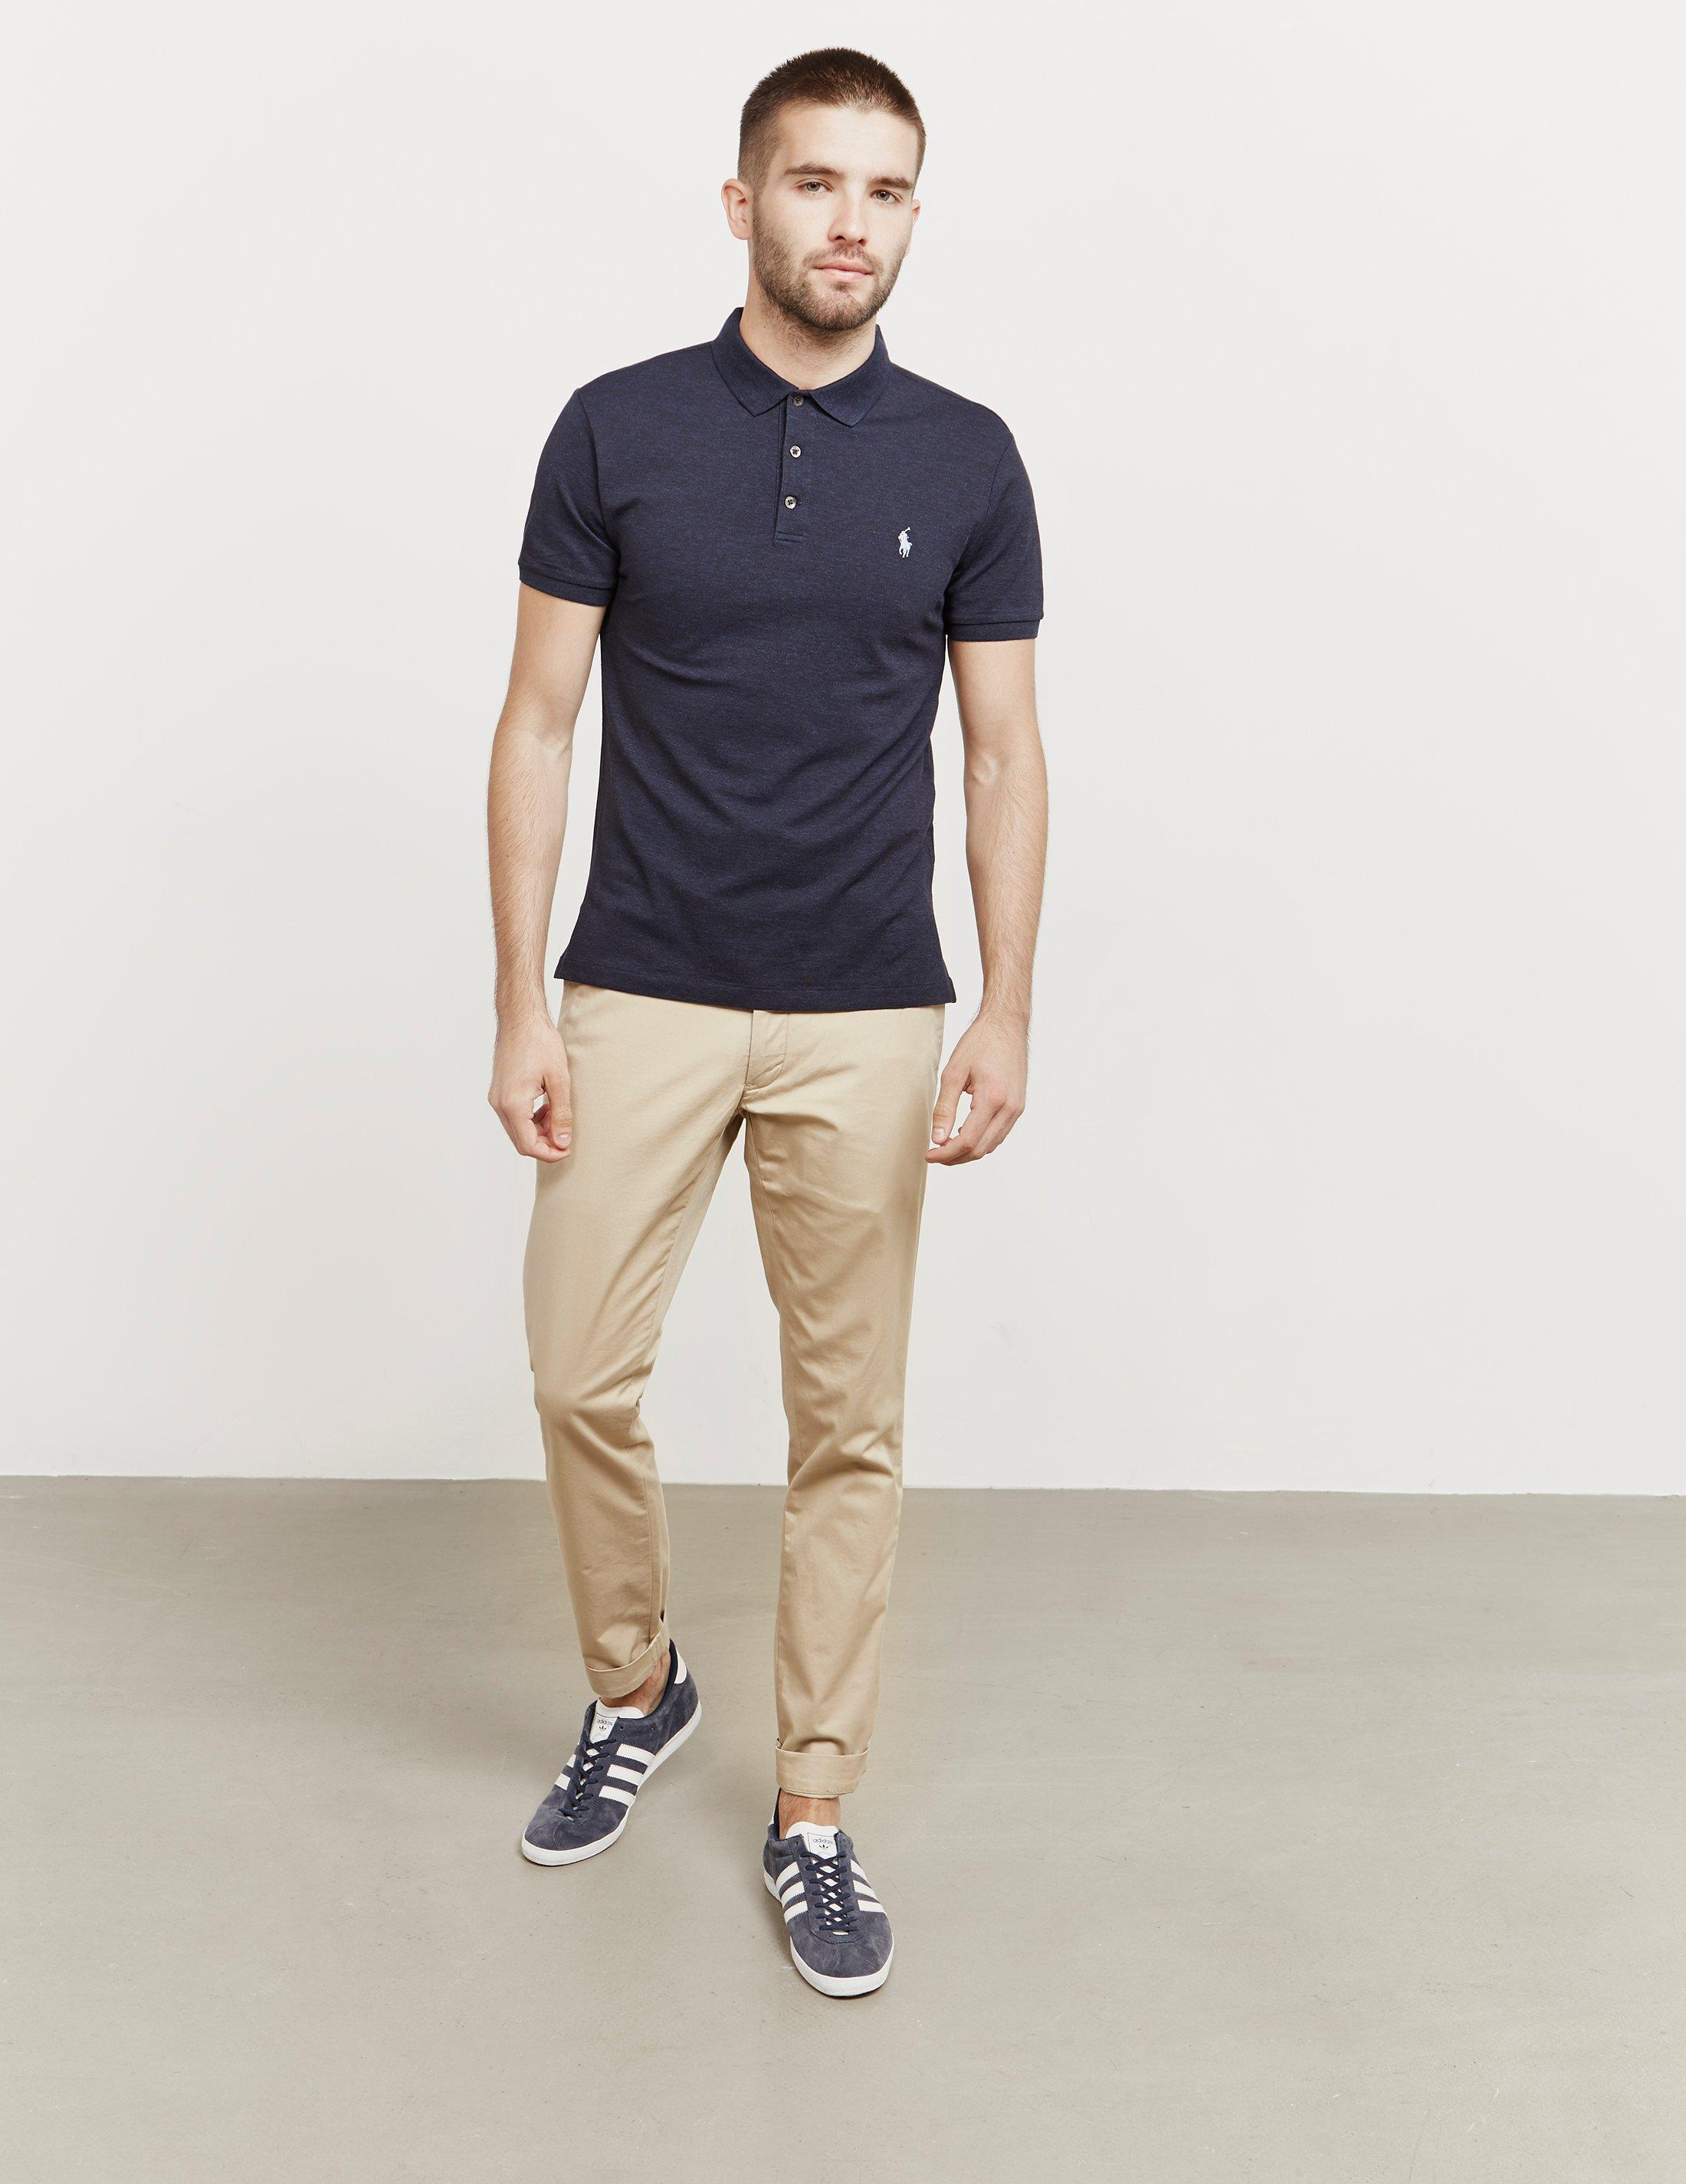 20746d4f3 ... discount lyst polo ralph lauren mens slim fit stretch short sleeve polo  shirt navy blue in